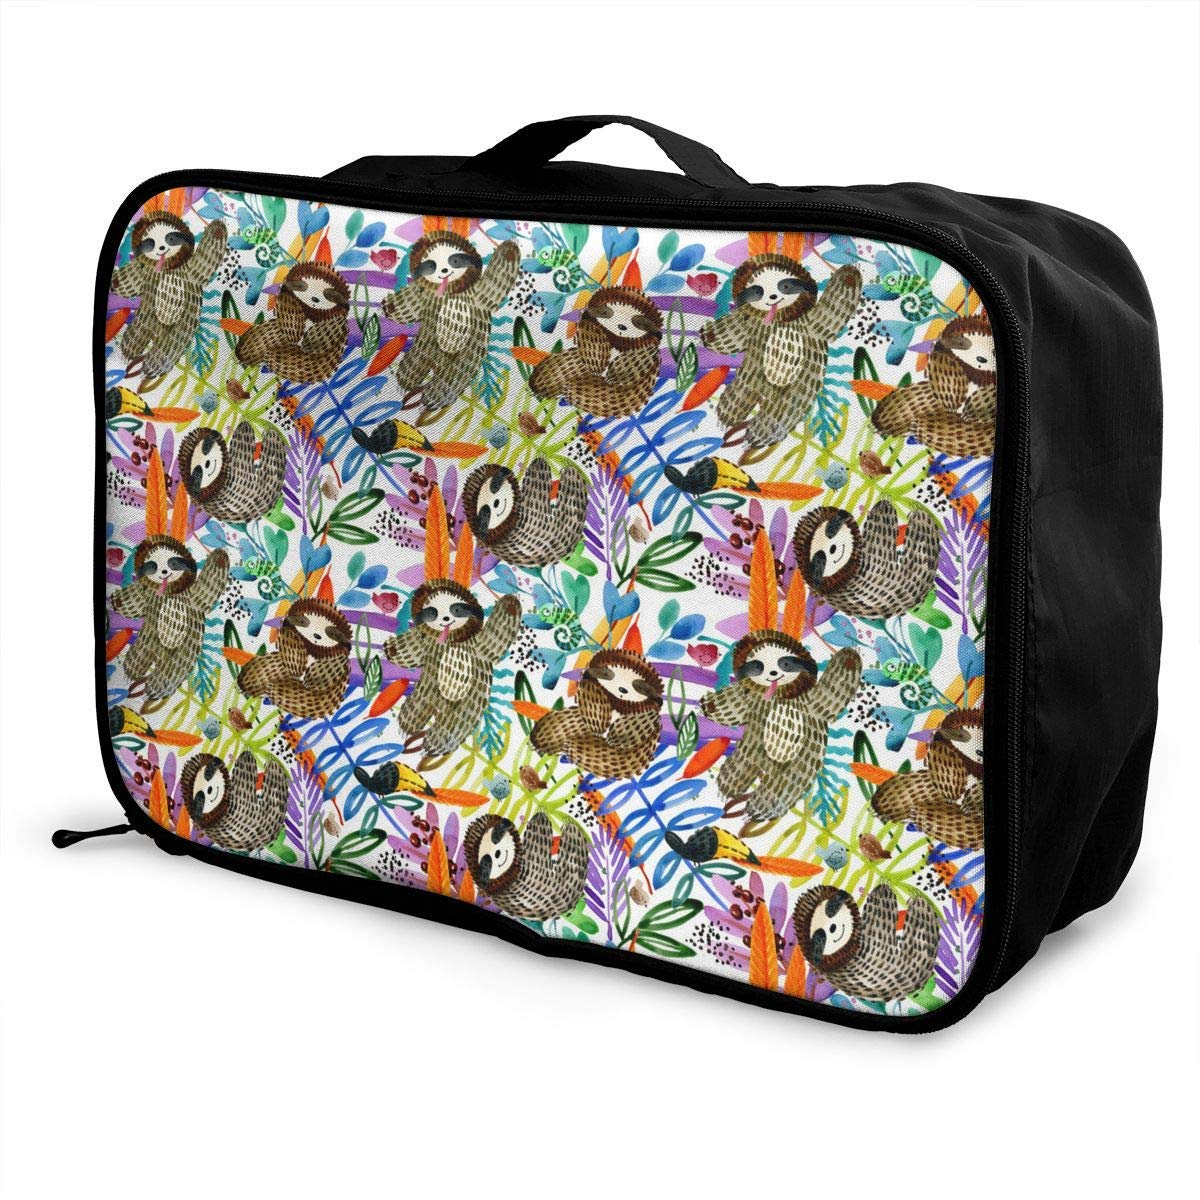 Portable Luggage Duffel Bag Tiger And Flower Travel Bags Carry-on In Trolley Handle